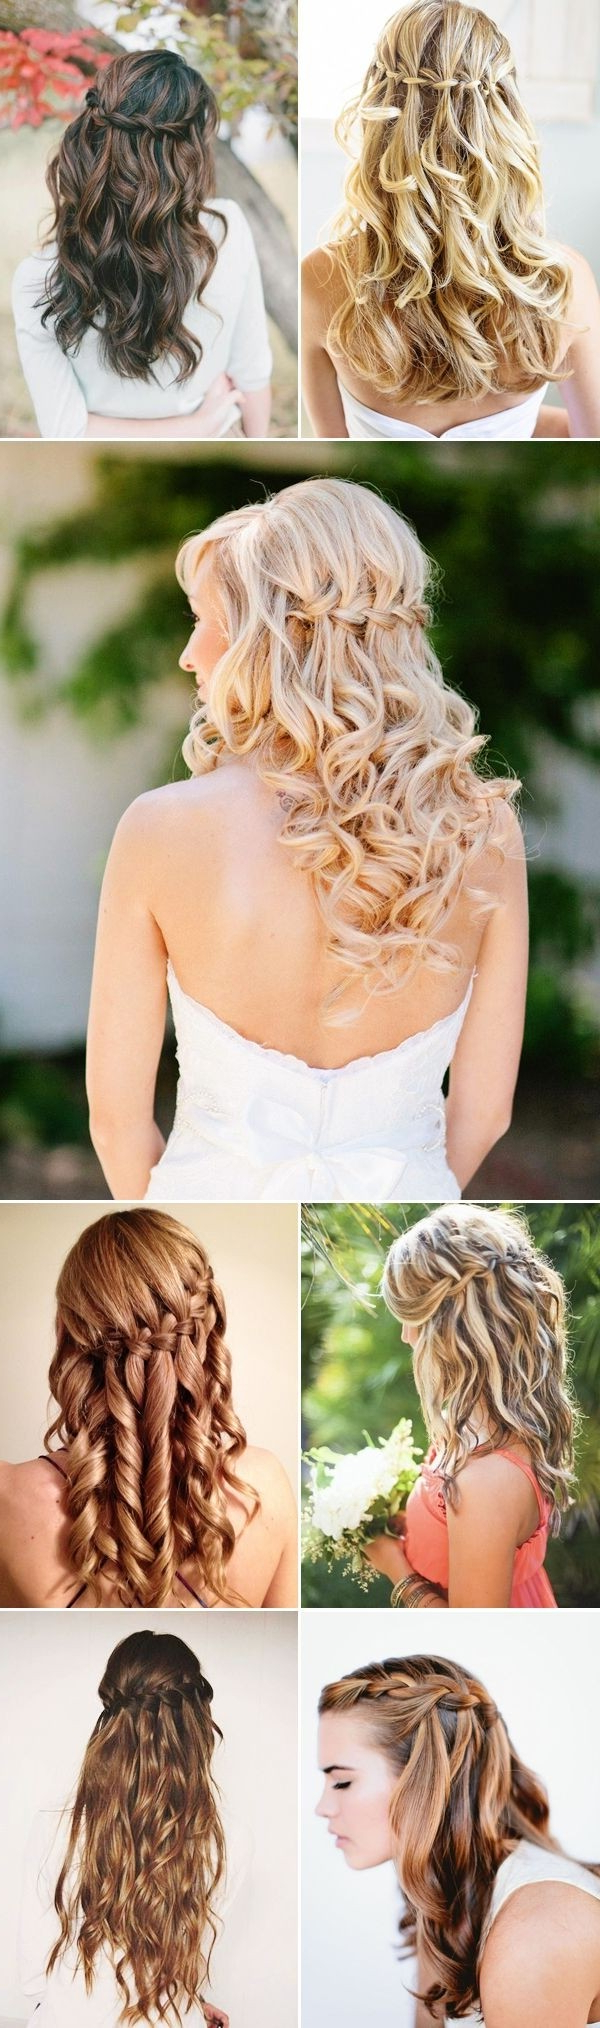 Famous Half Up Blonde Ombre Curls Bridal Hairstyles Throughout 30 Hottest Bridesmaid Hairstyles For Long Hair – Popular Haircuts (View 8 of 20)